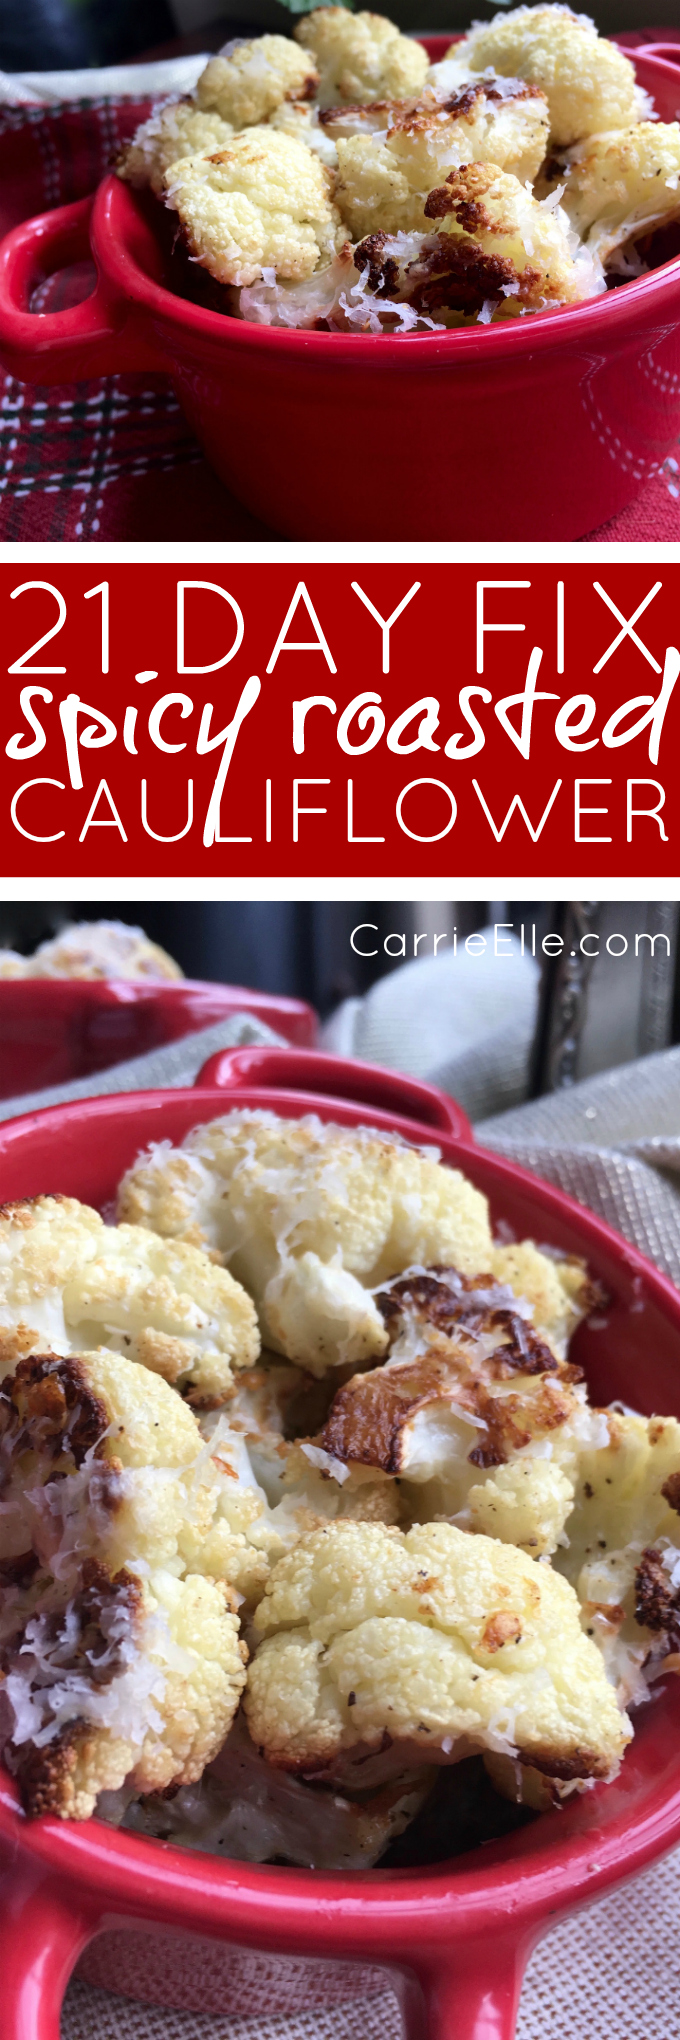 21 Day Fix Spicy Roasted Cauliflower